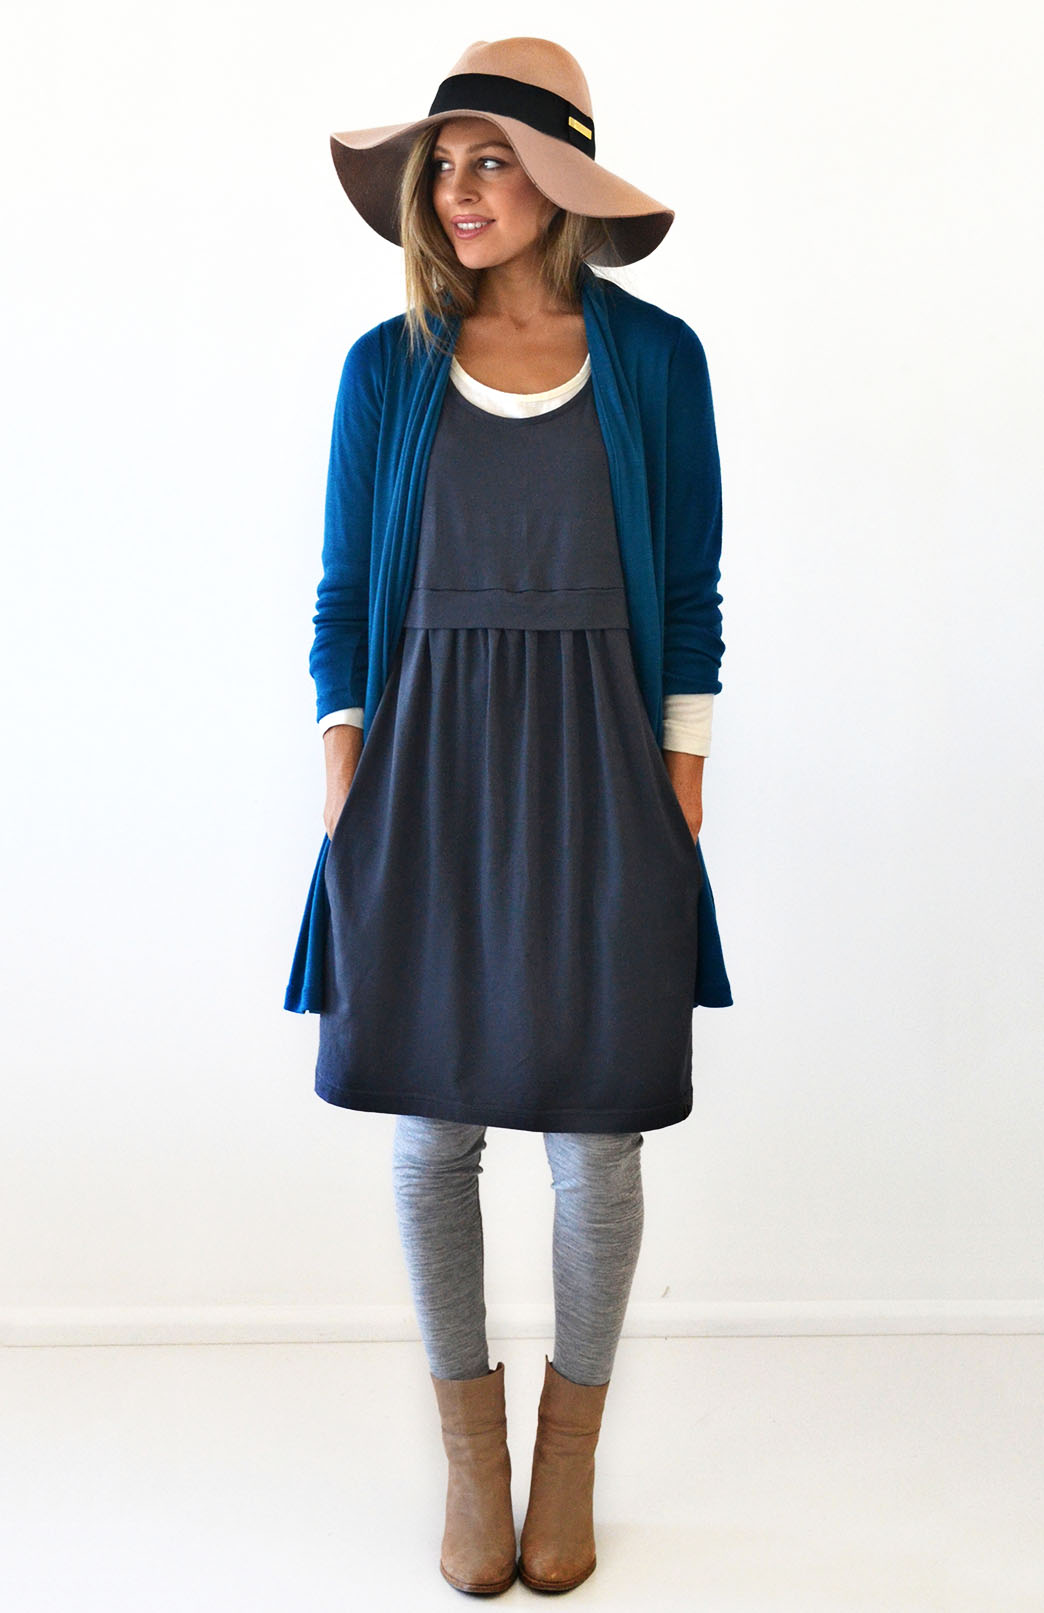 Tulip Dress - Women's Steel Grey Merino Wool Fitted Tulip Dress with Side Pockets - Smitten Merino Tasmania Australia